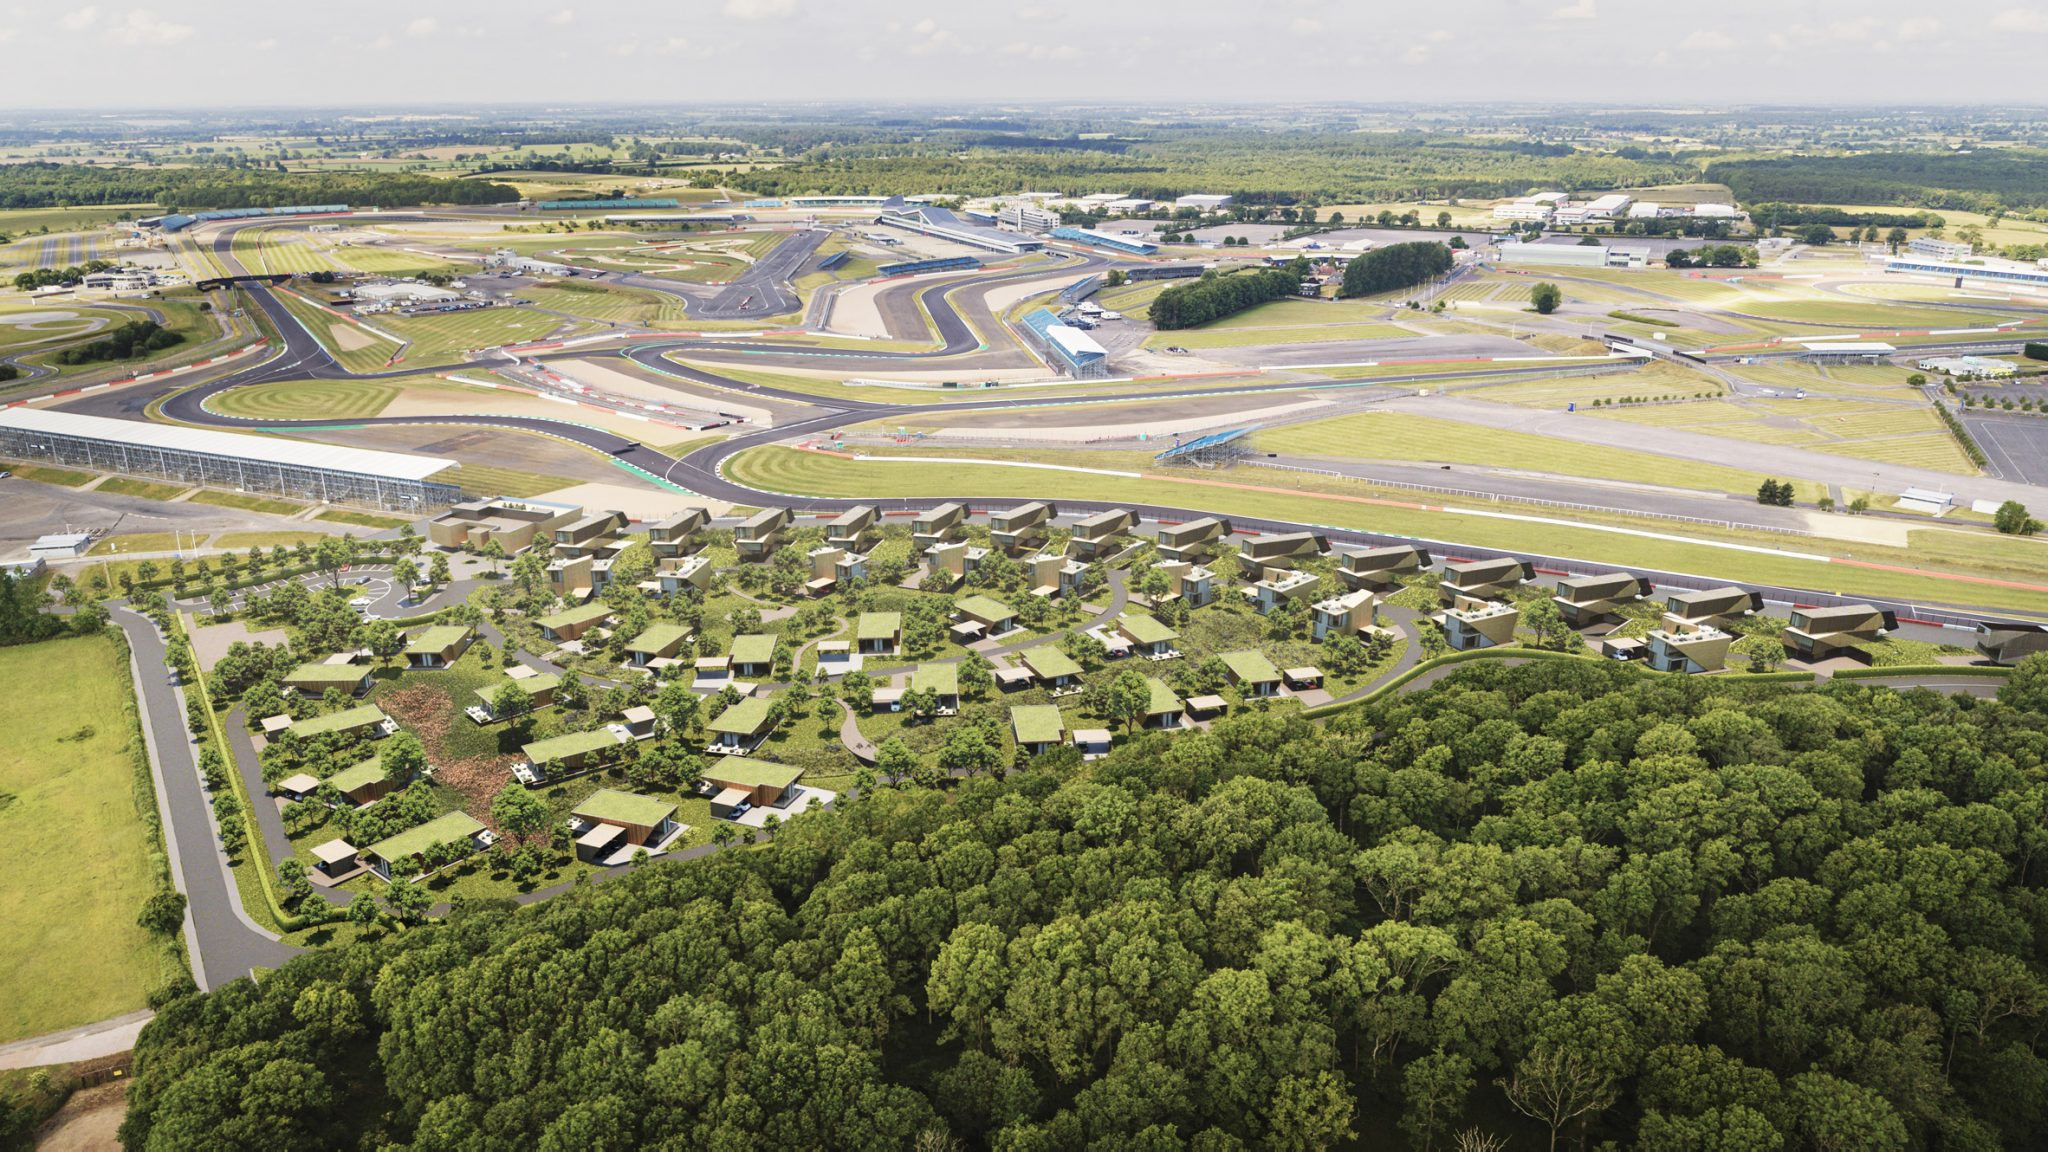 escapade-silverstone-race-track-holiday-